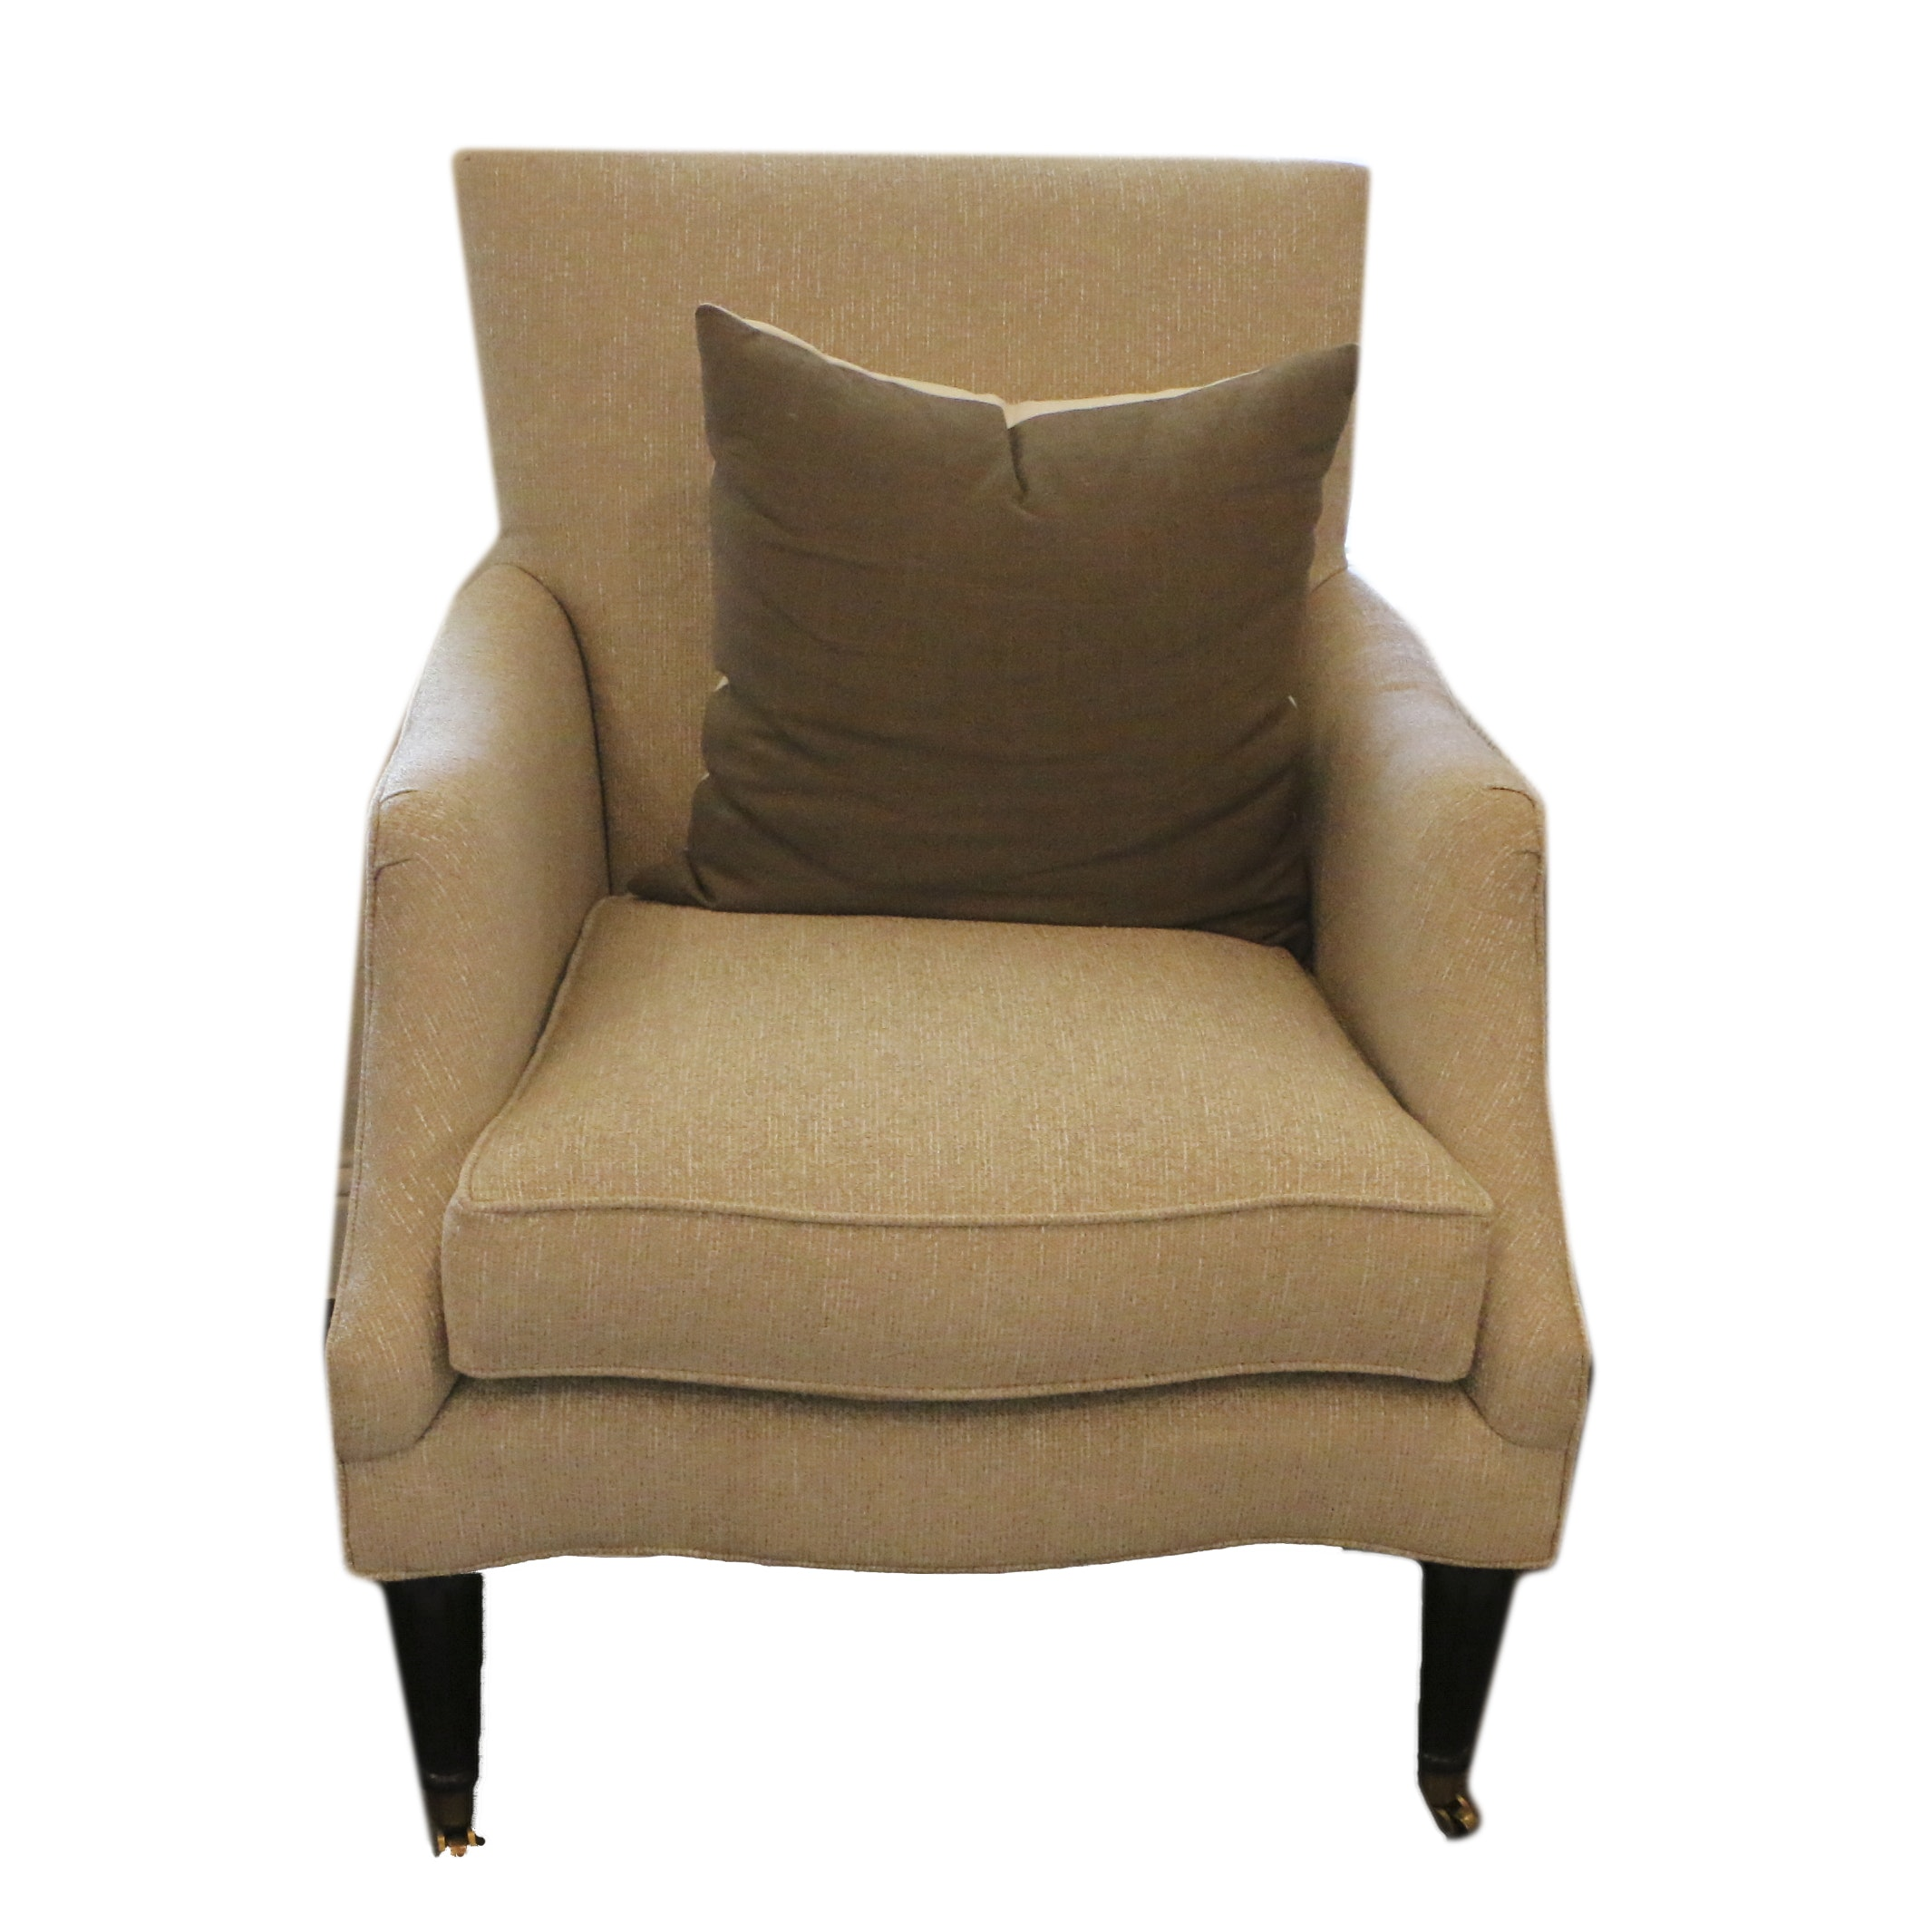 Beige Upholstered Armchair by Southern